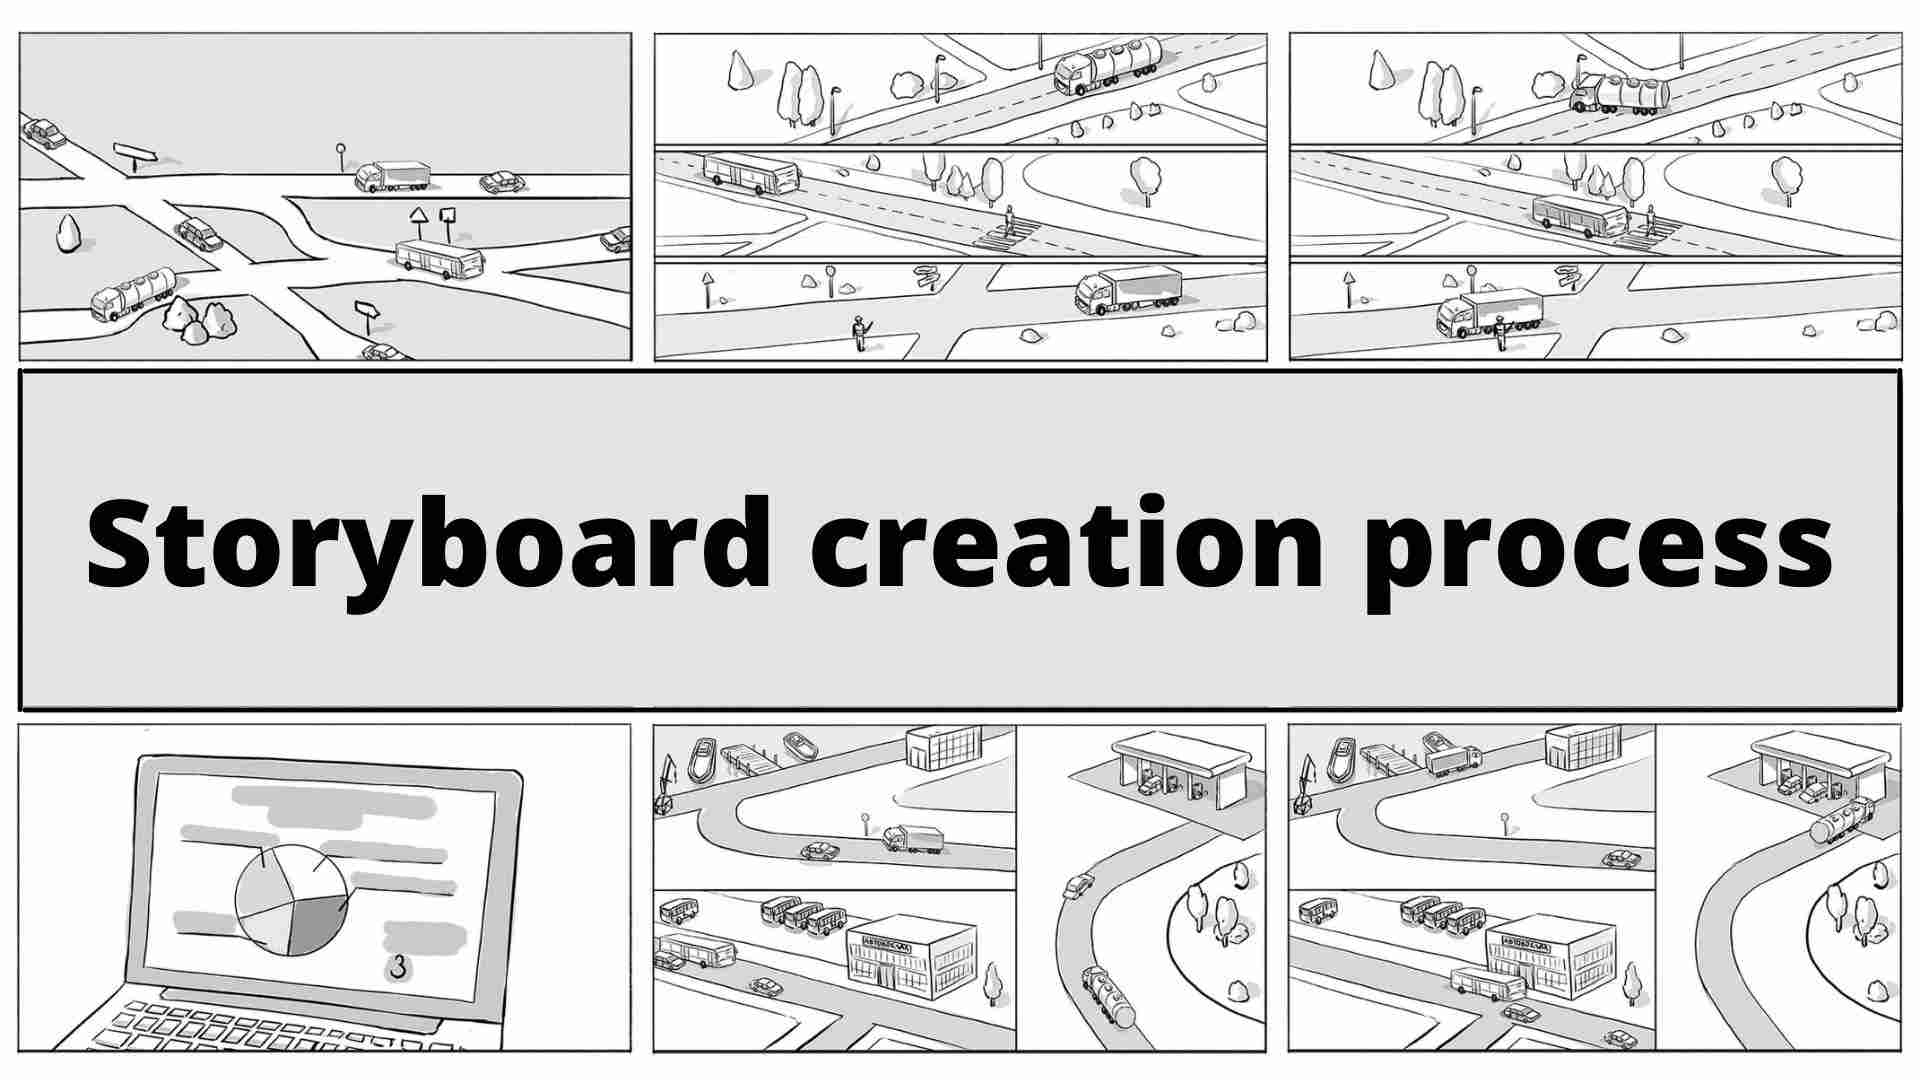 Storyboard creation process | Dictionary by Darvideo